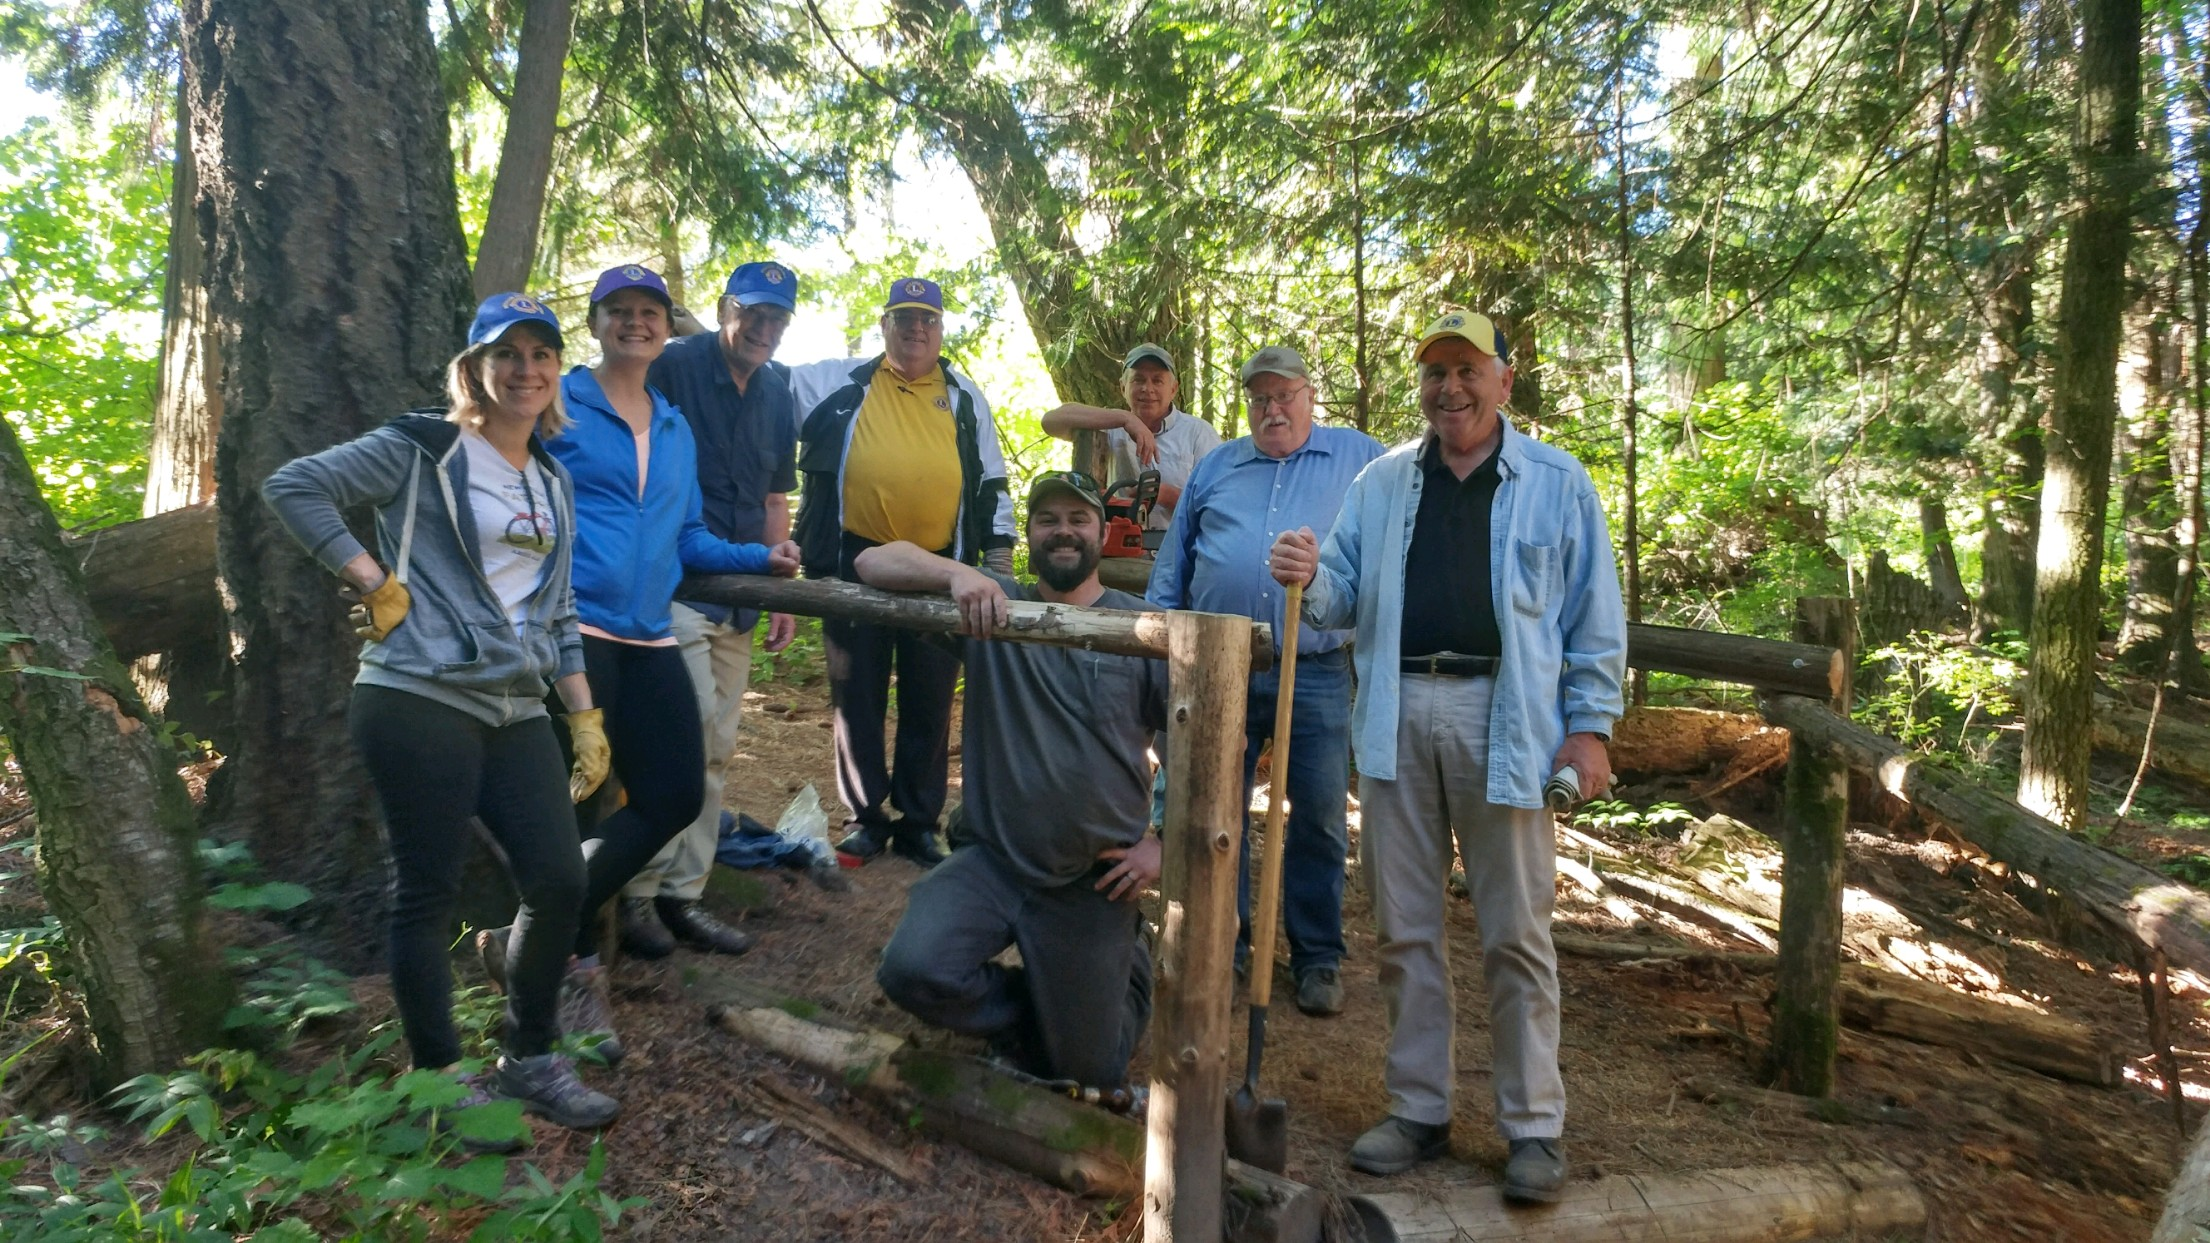 Moscow Central Lions Club spent an evening of service on June 14, adding additional railings, building stairs, and helping make trails easier to navigate.